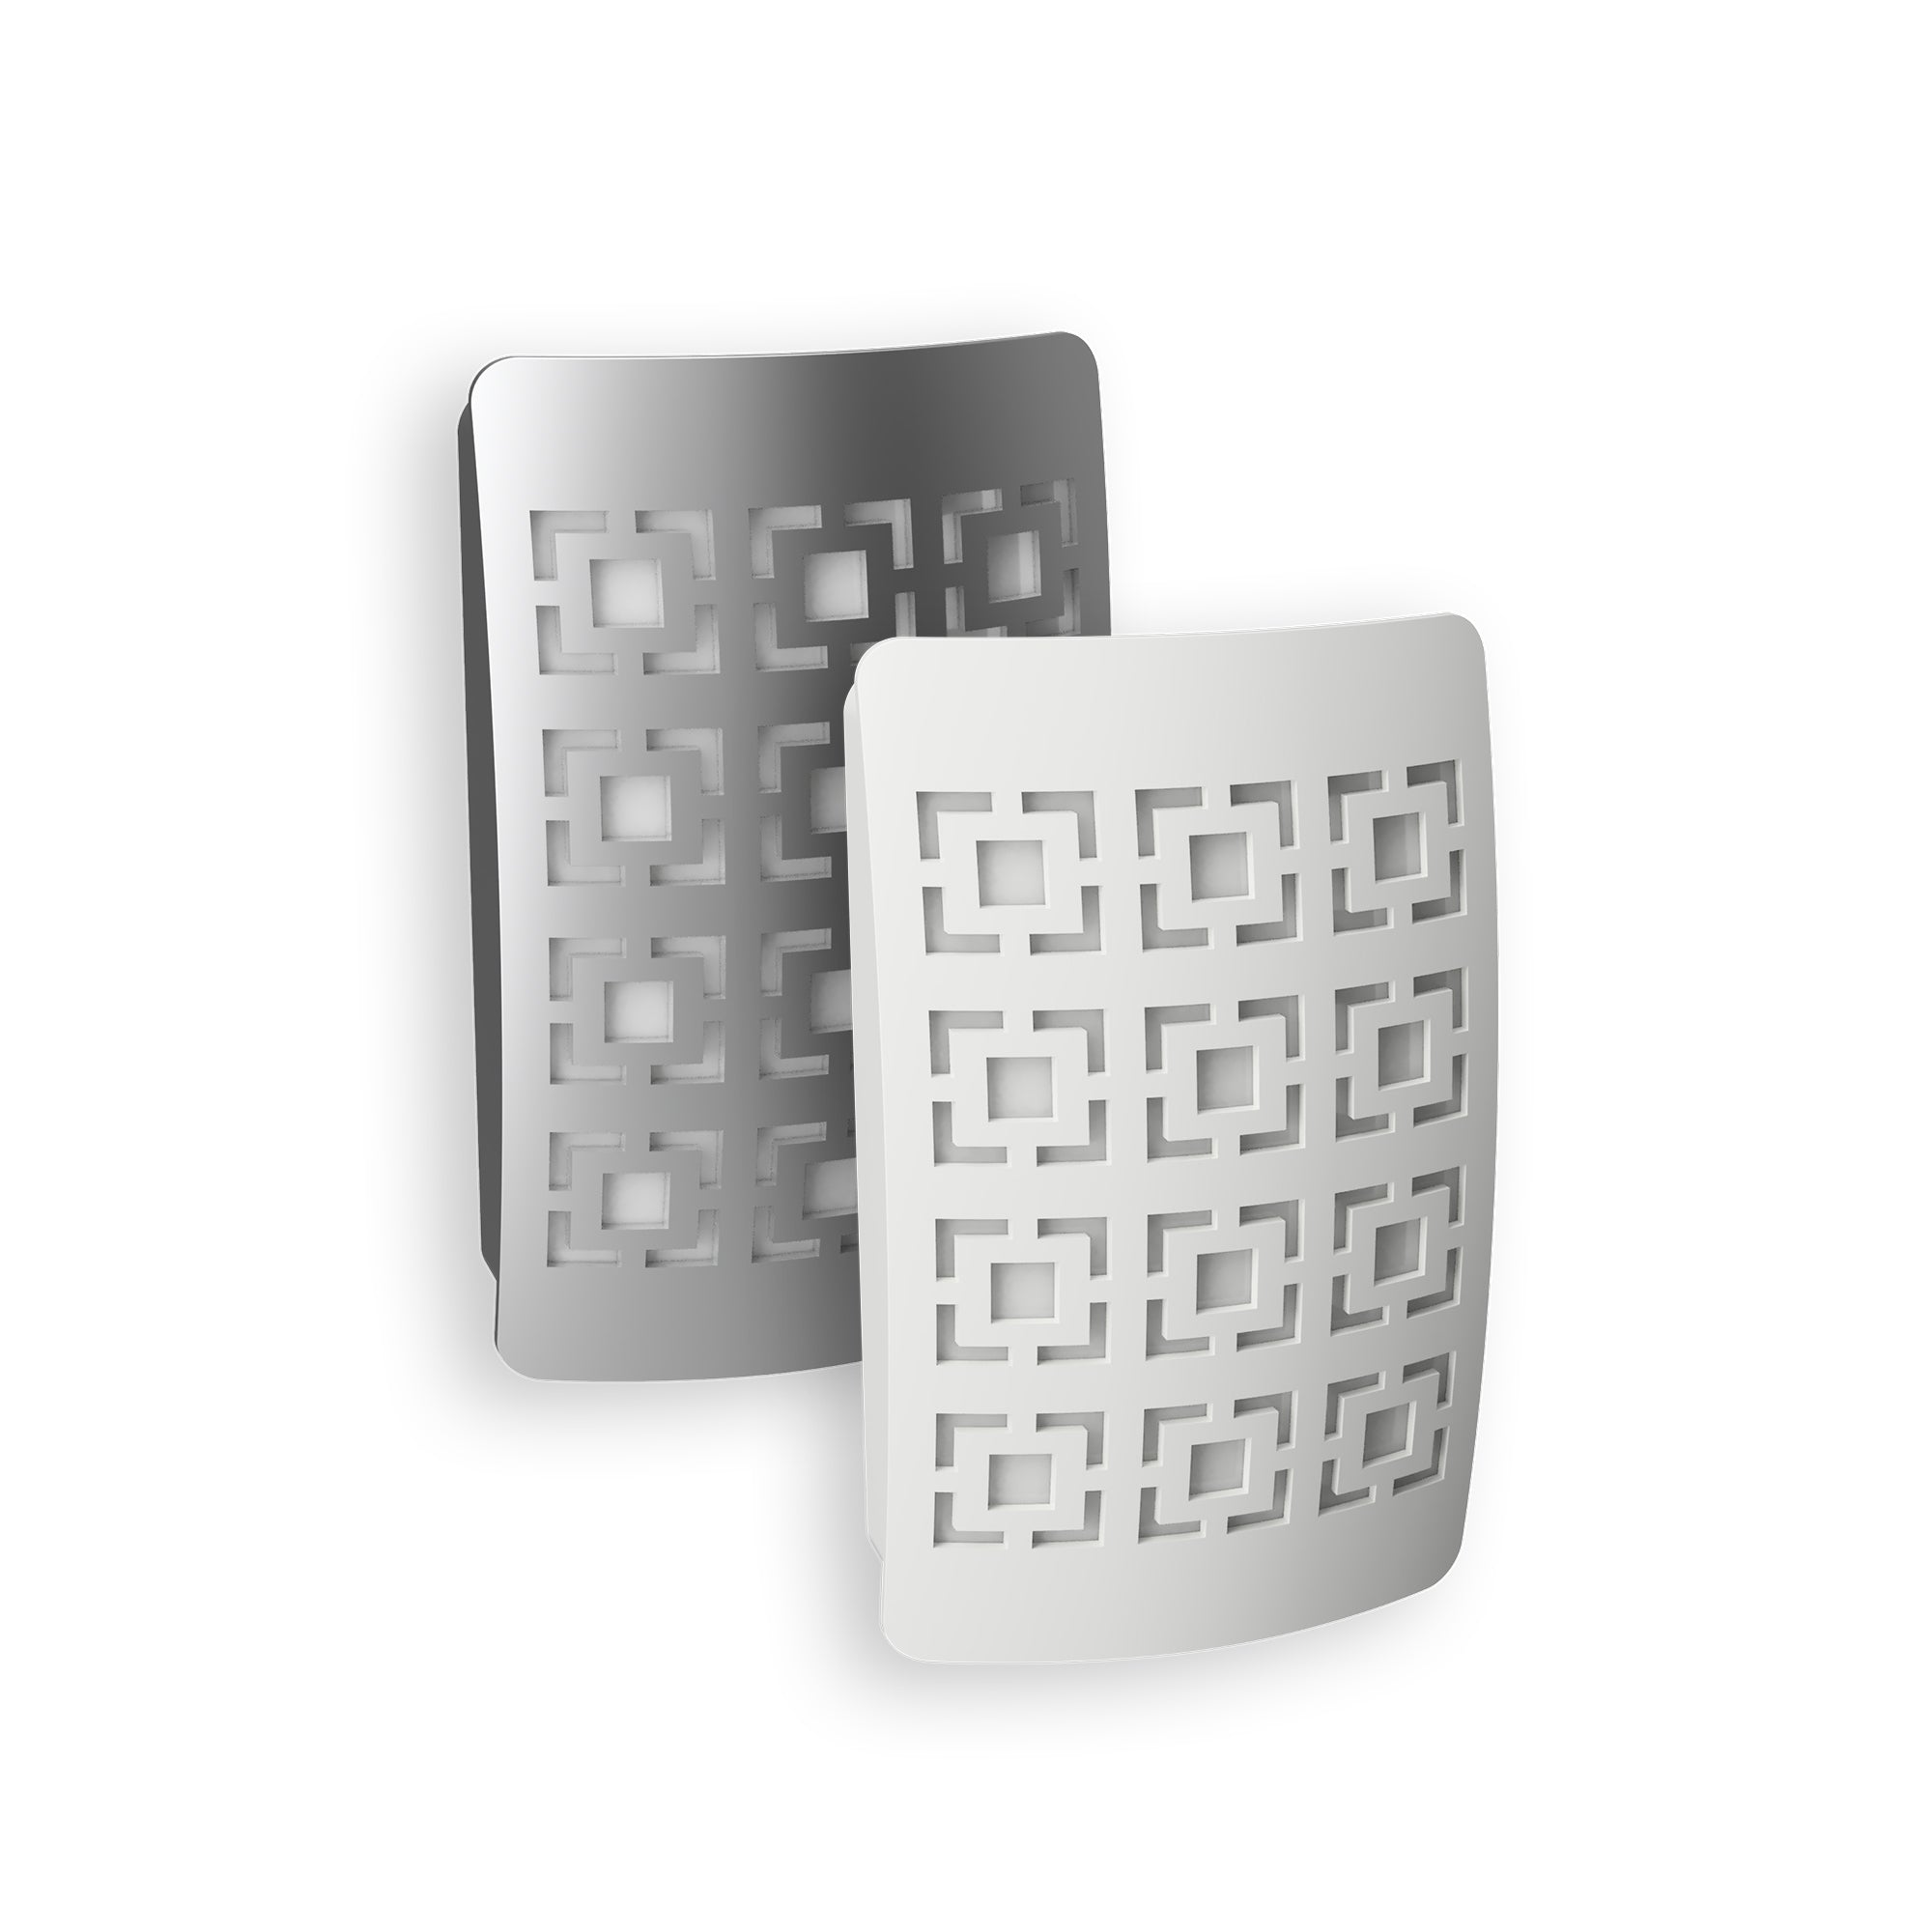 GeoSquare DecoPlug LED Night Light | NL-DPGS-W, NL-DPGS-N